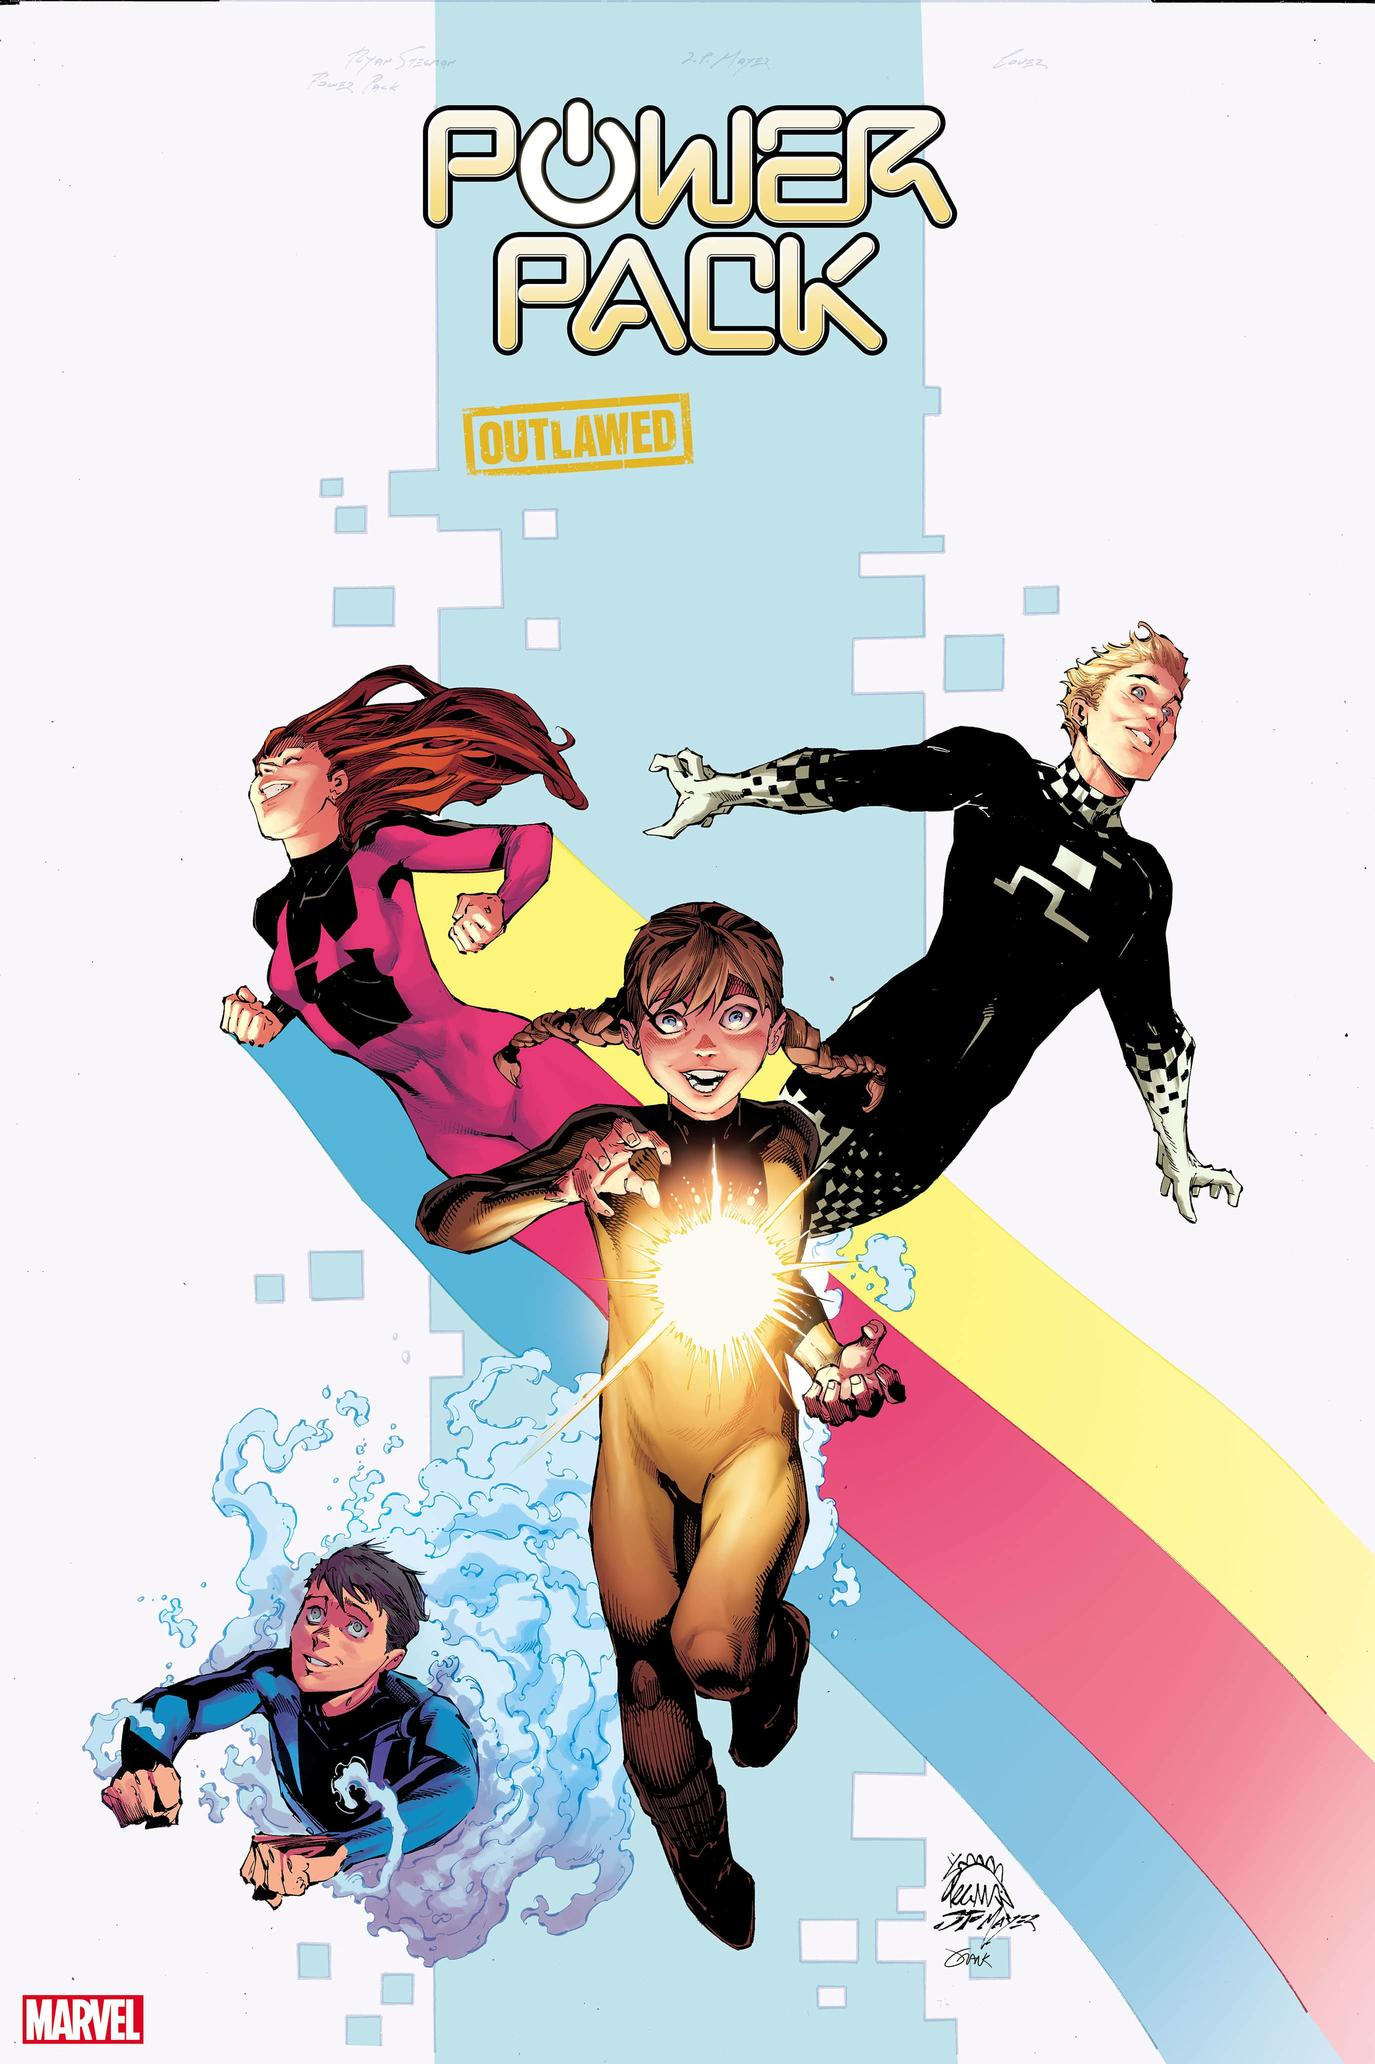 Power Pack #1 cover